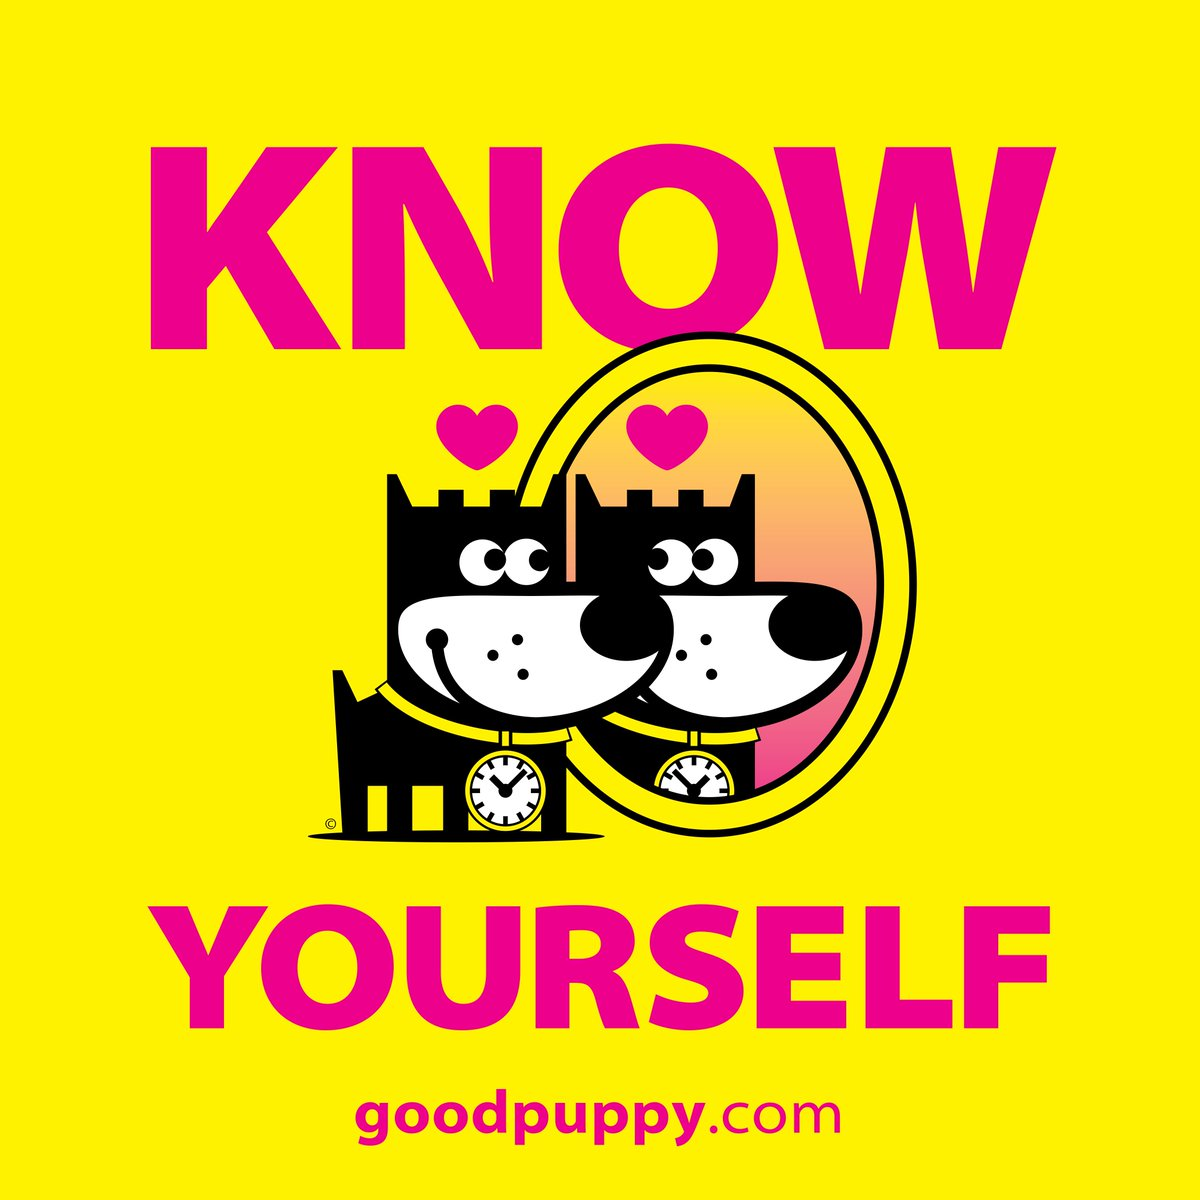 GOOD PUPPY | Child Behavior Tools on Twitter: "|1200|1200|?|71d3b533a9ba4855716faf50f1db65a1|False|UNLIKELY|0.3106650412082672